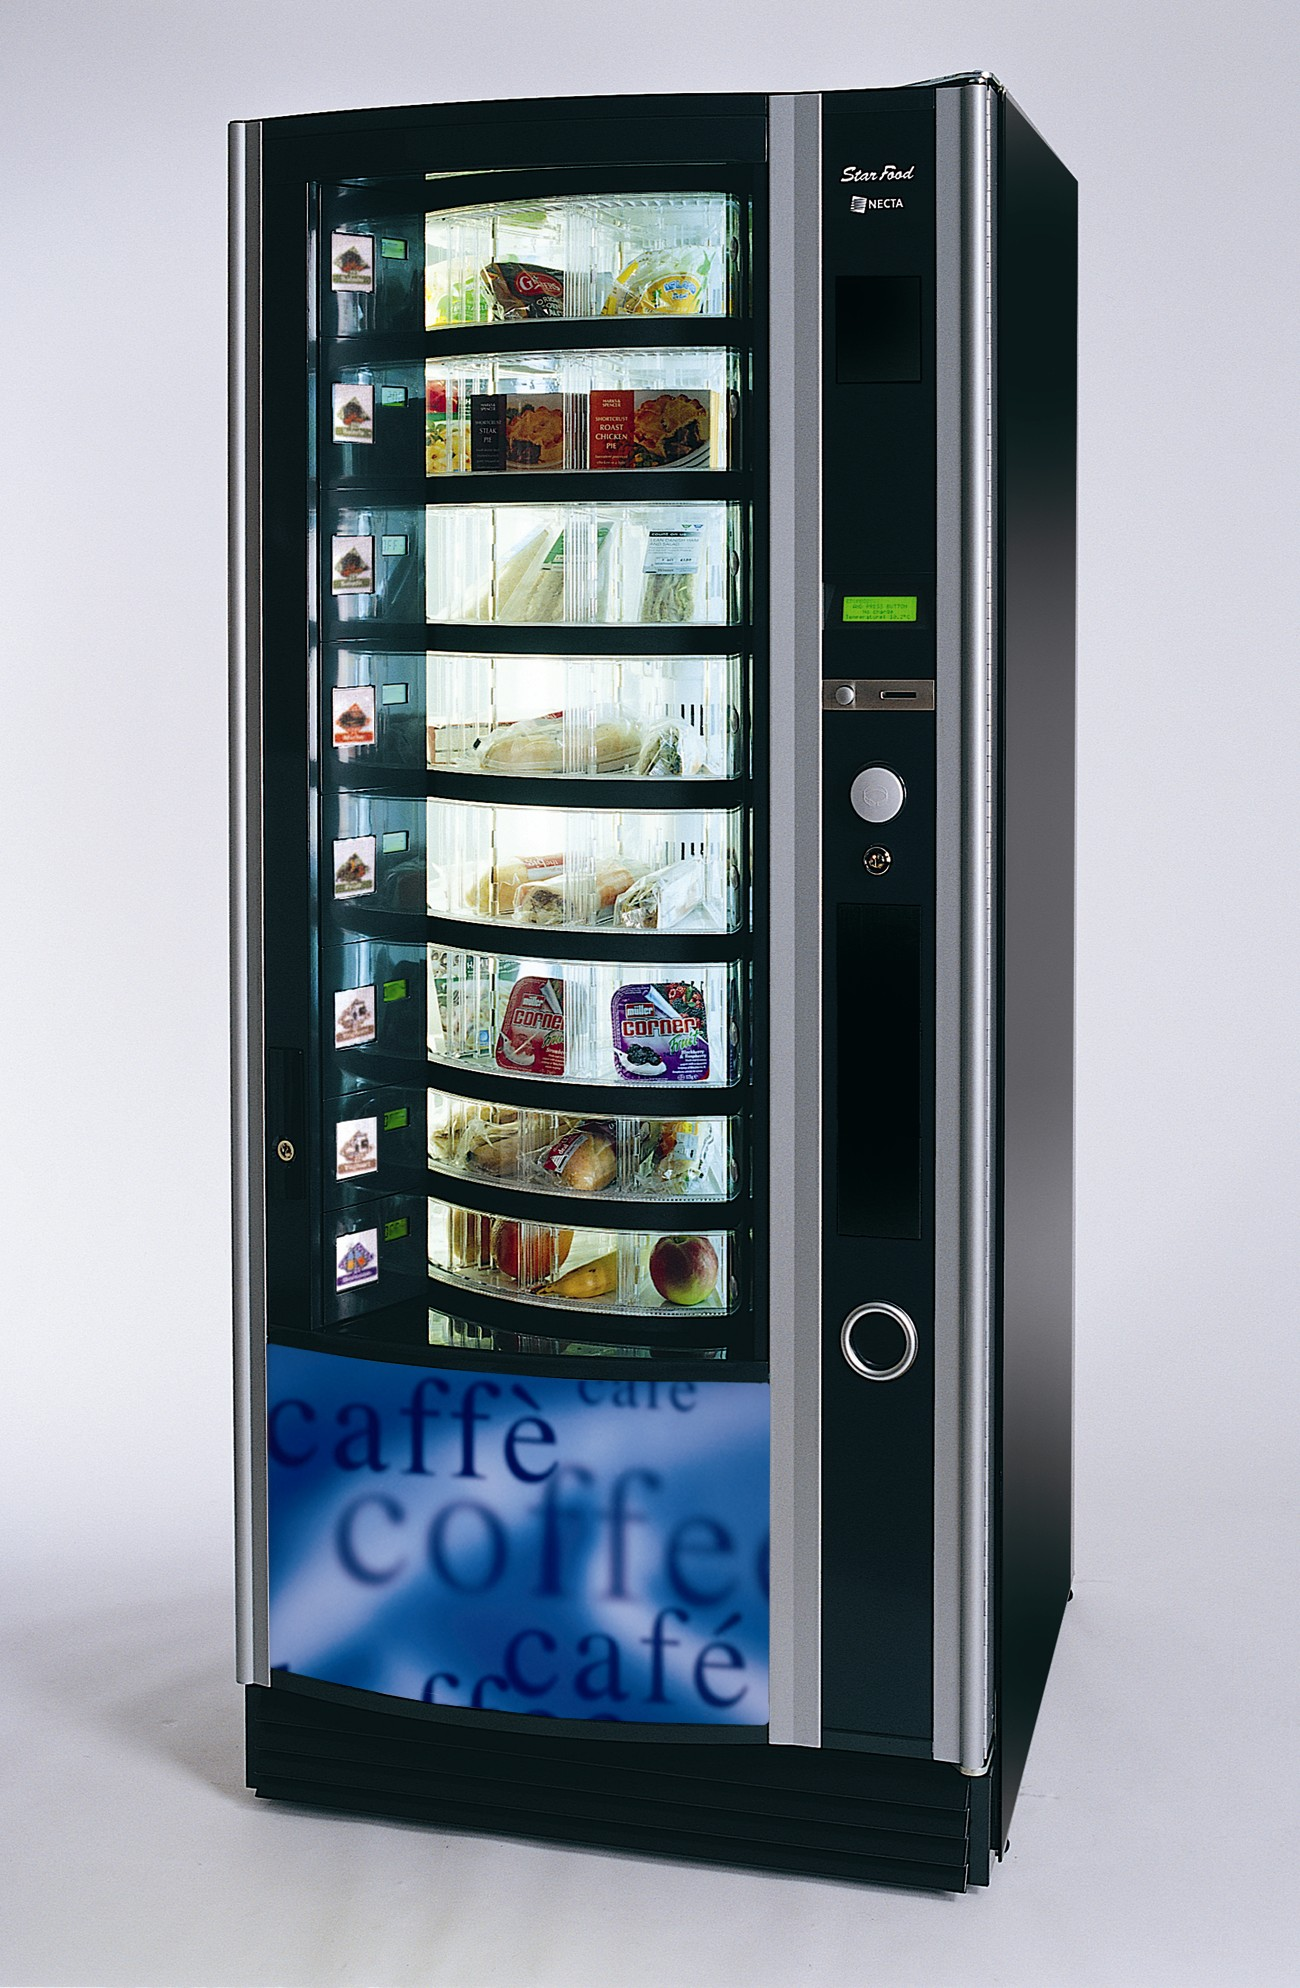 carousel vending machine